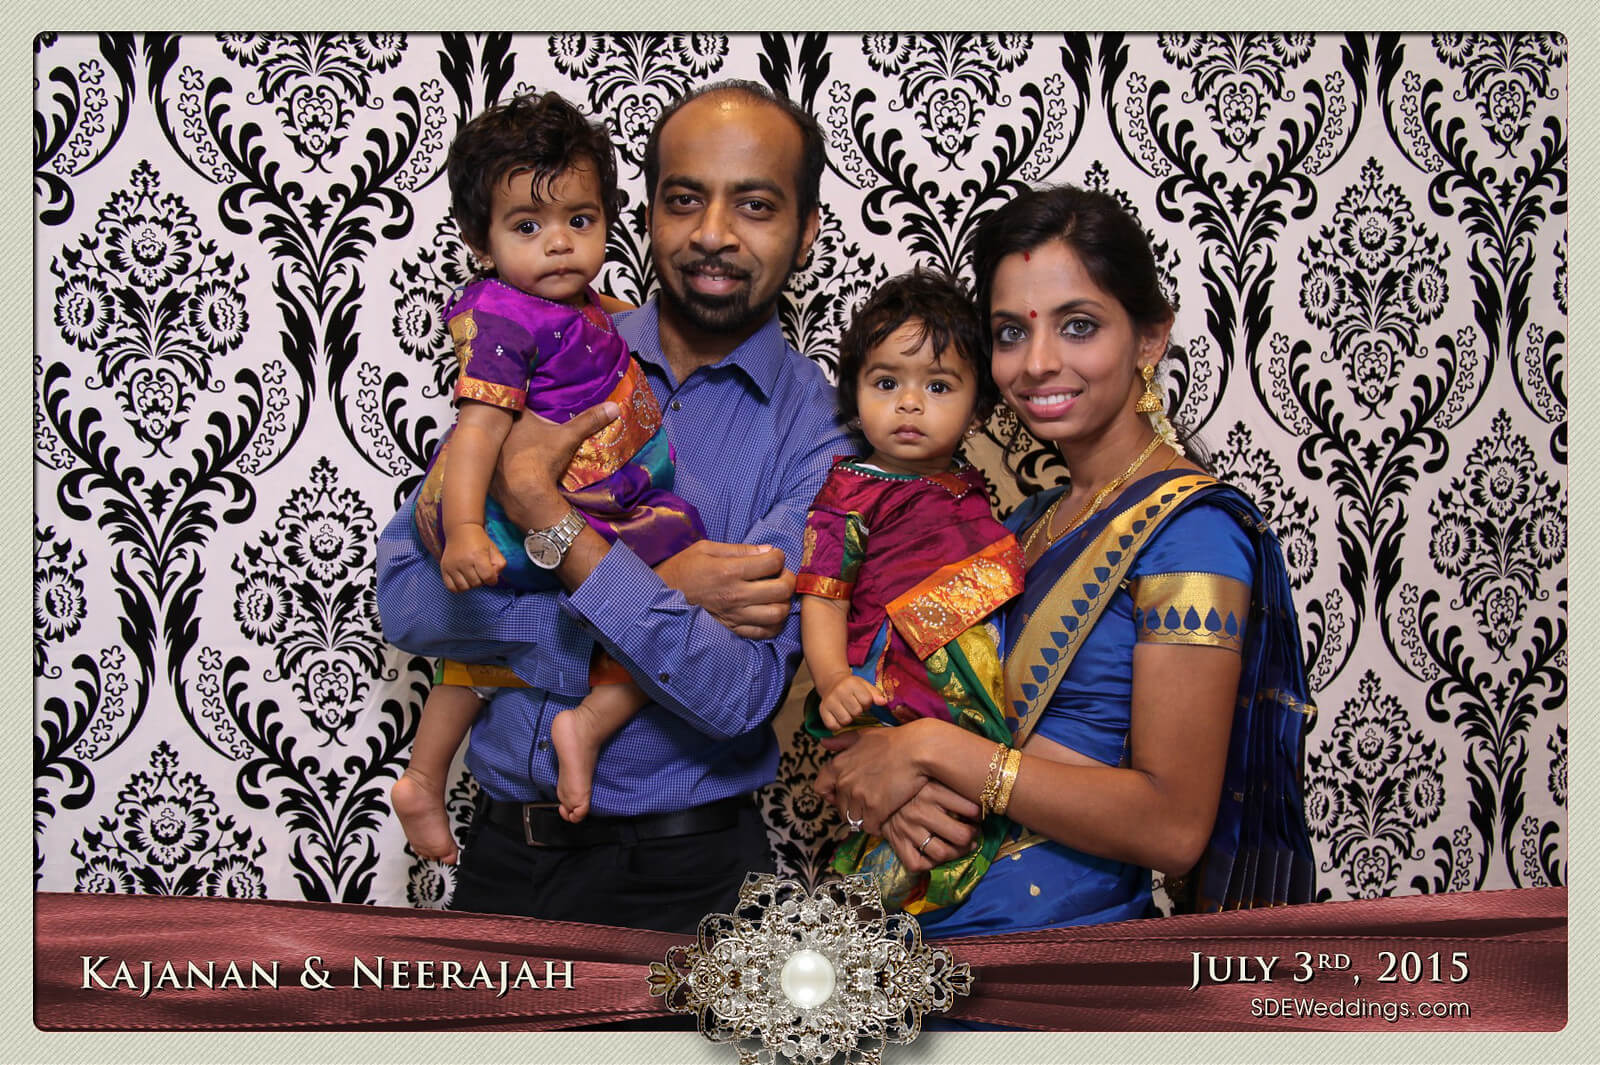 Toronto Scarborough Convention Centre Hindu Wedding Photo Booth Rental 10